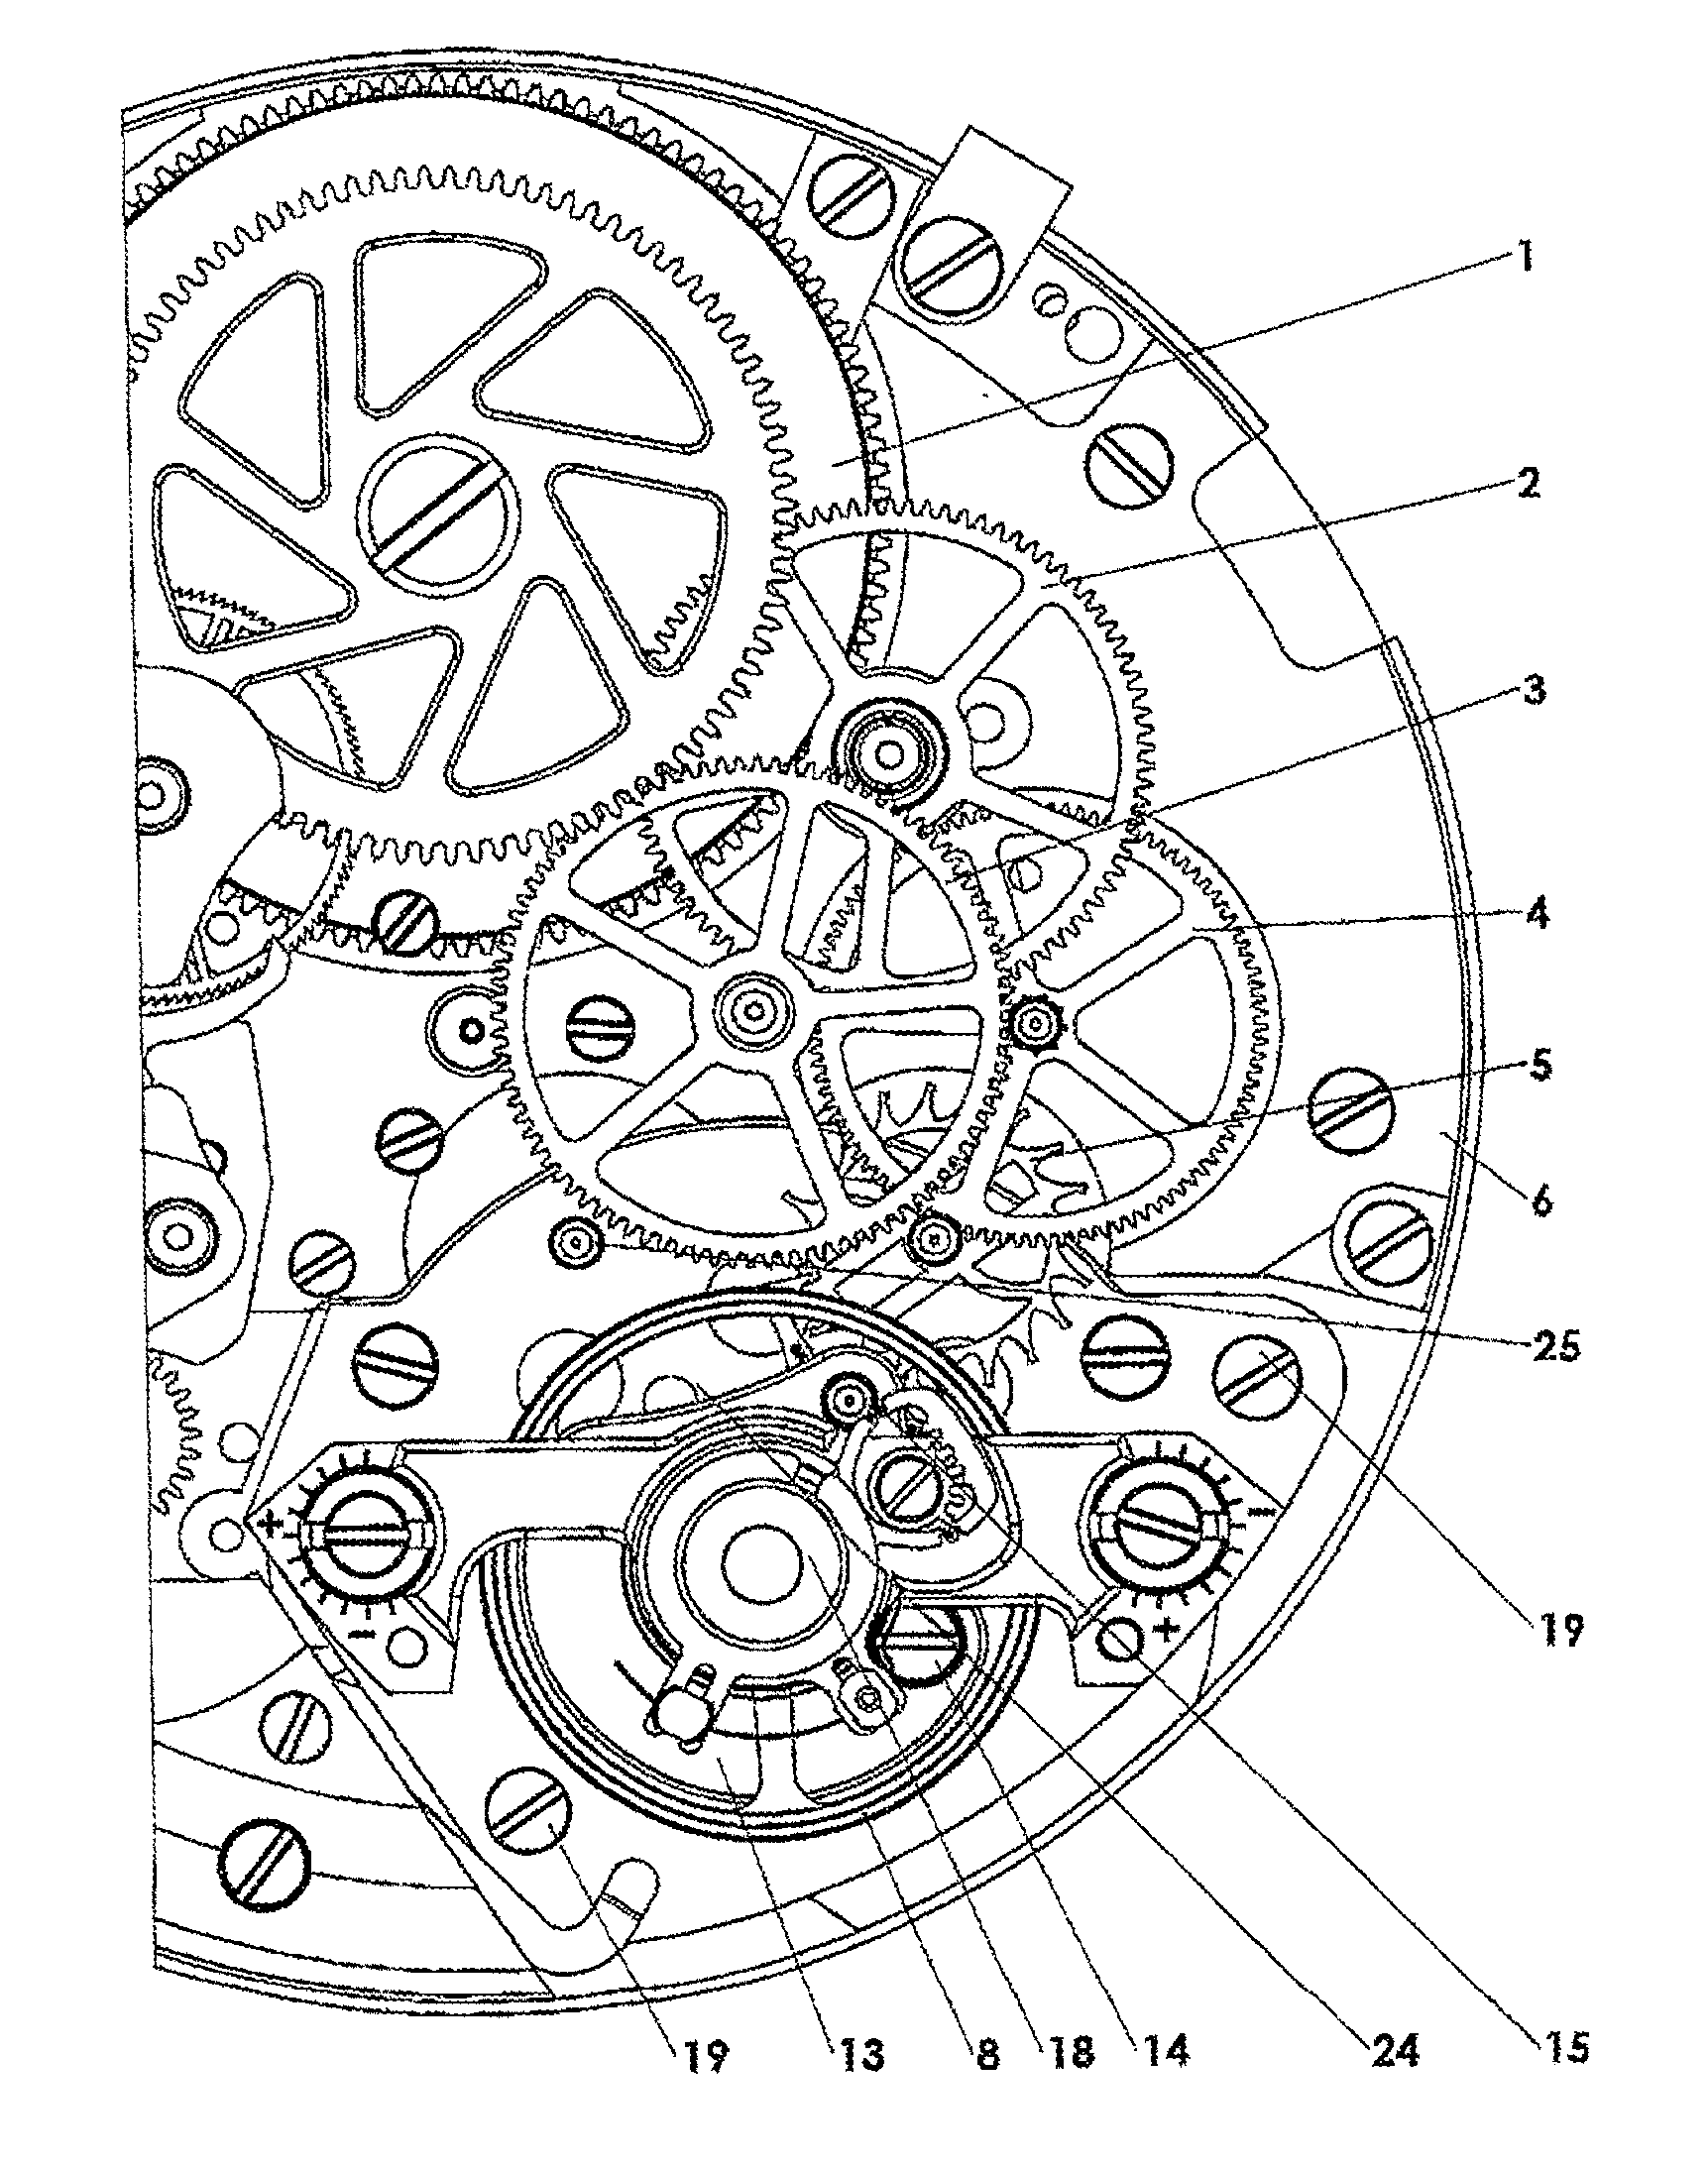 Patent us20120092969 clock movement patent patentdrawing patent us20120092969 clock movement patent patentdrawing drawing clock invention malvernweather Gallery